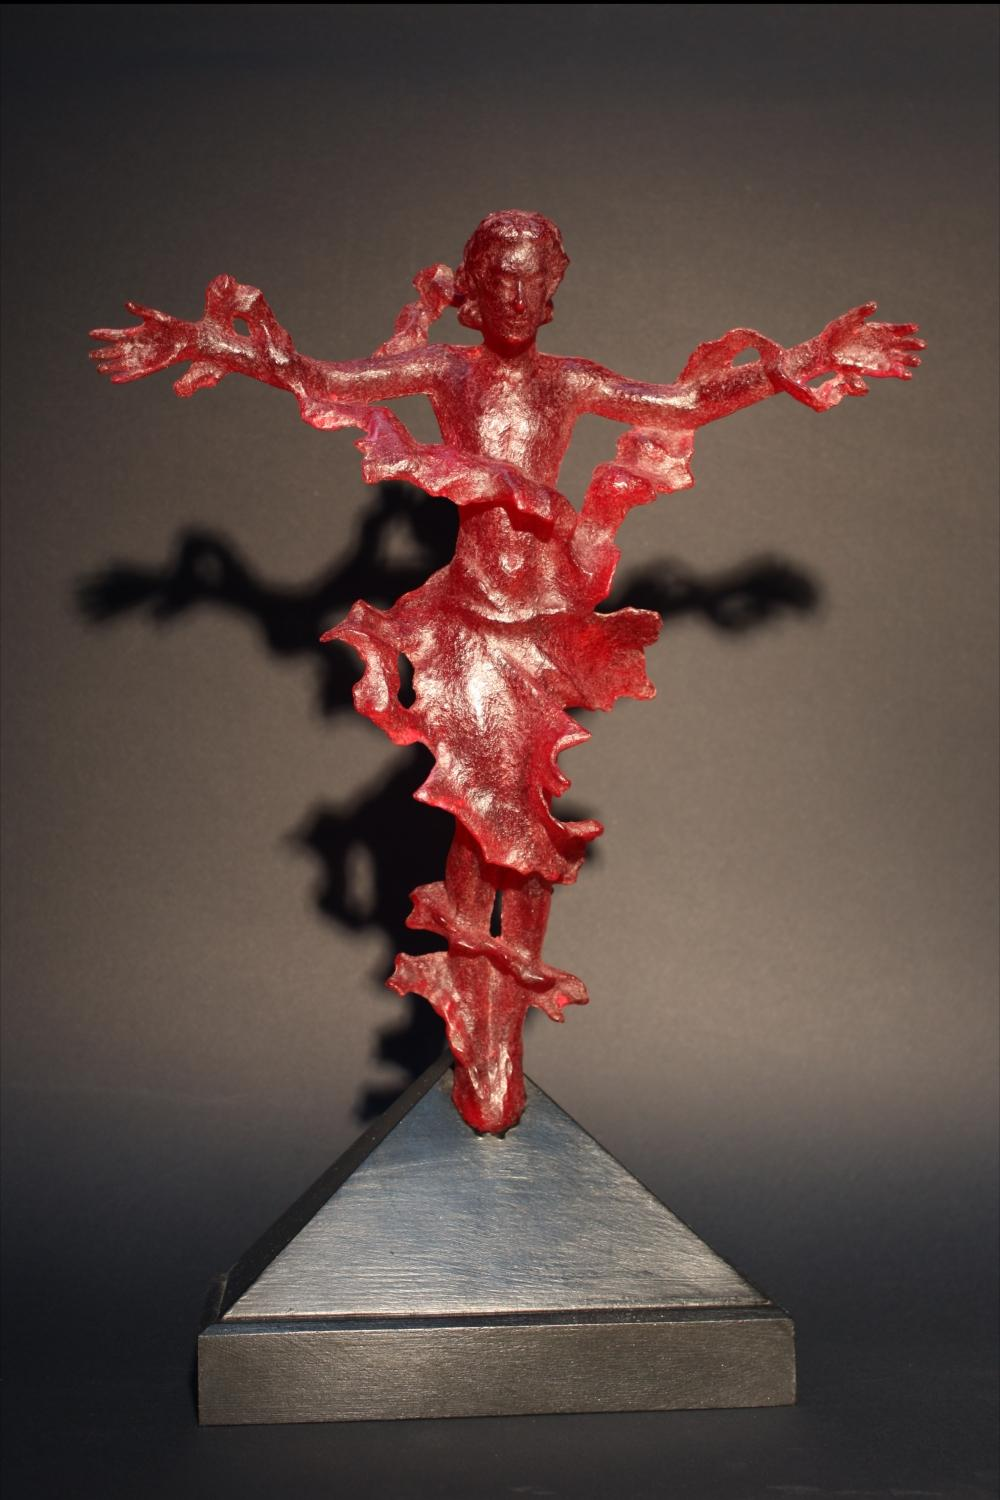 A Red Emissary for the Berwick Cross